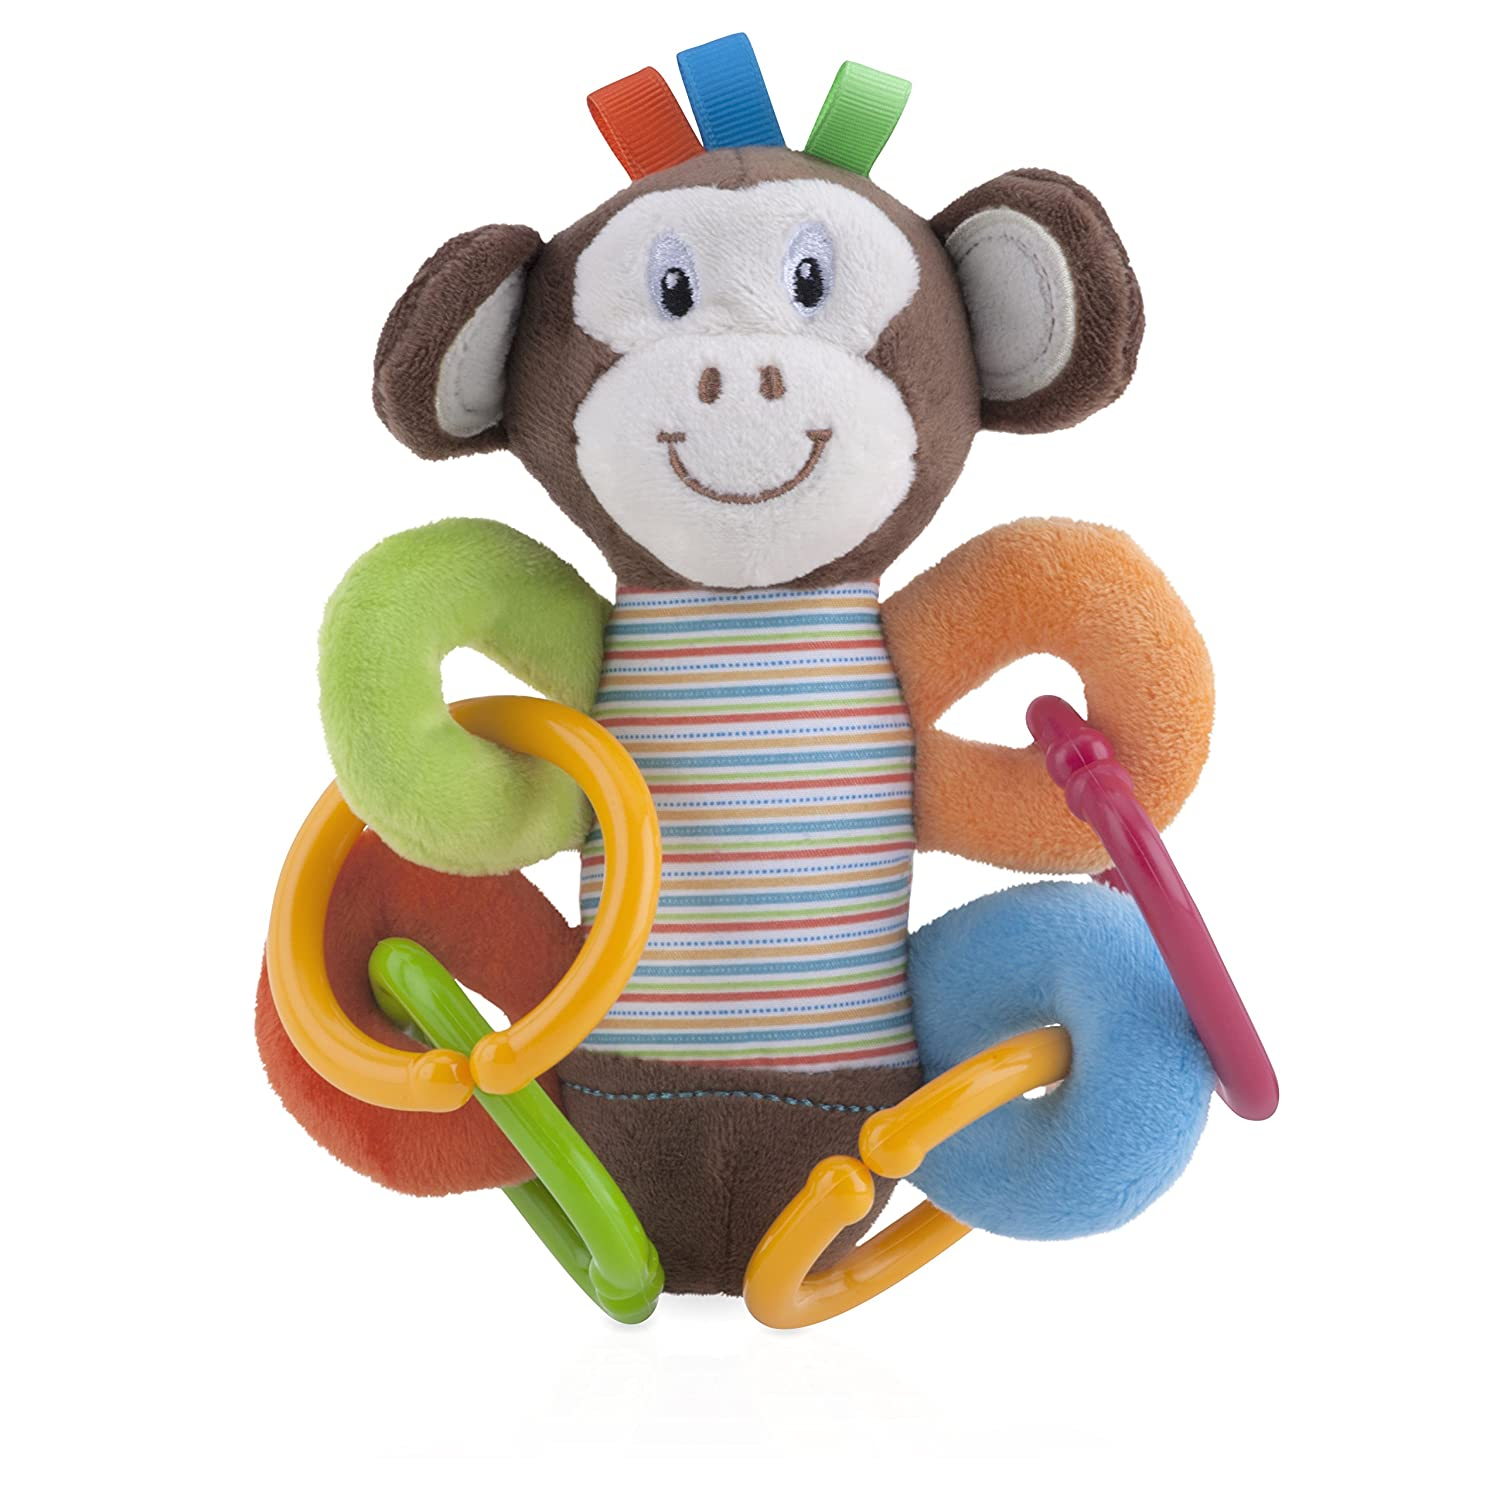 Monkey Nuby Plush Squeeze N Squeak Character with Squeaker and Rattle Rings